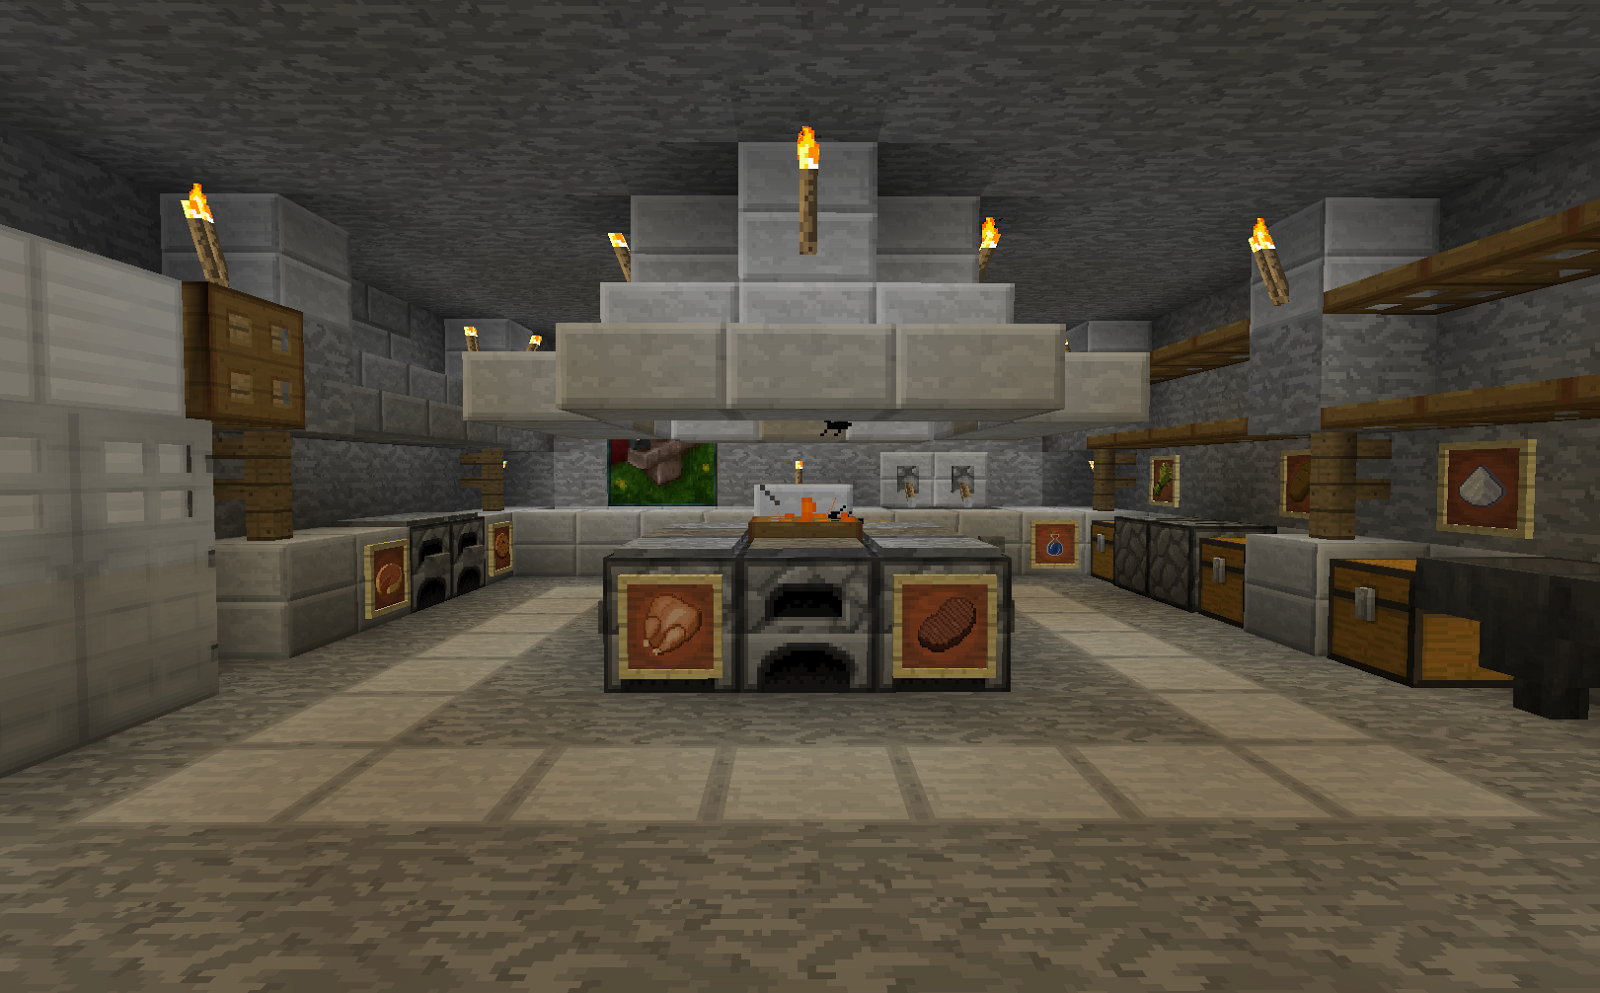 minecraft interior design kitchen Batiment minecraft